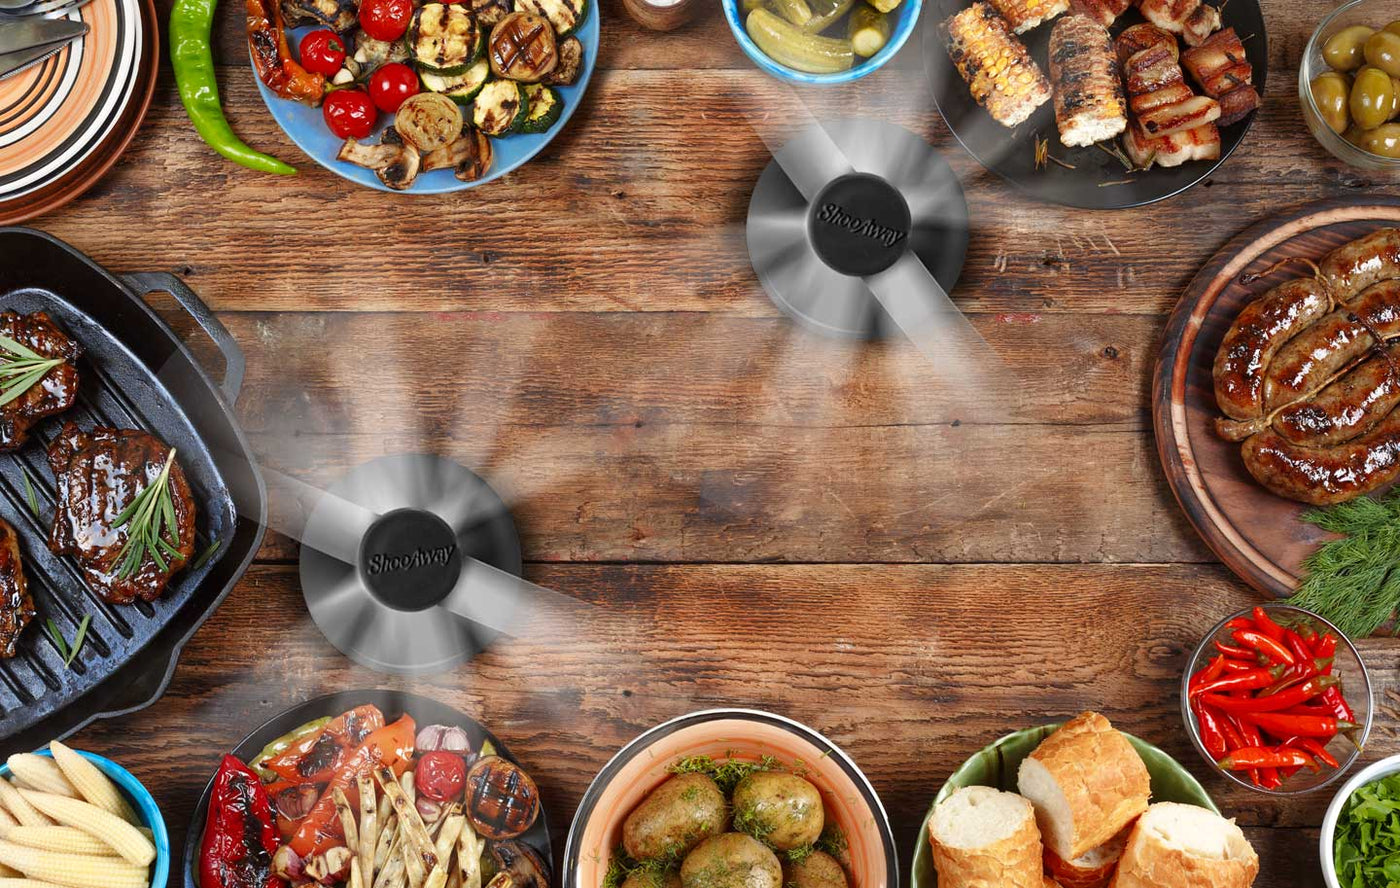 ShooAway Table Fan Keeps Flies Away